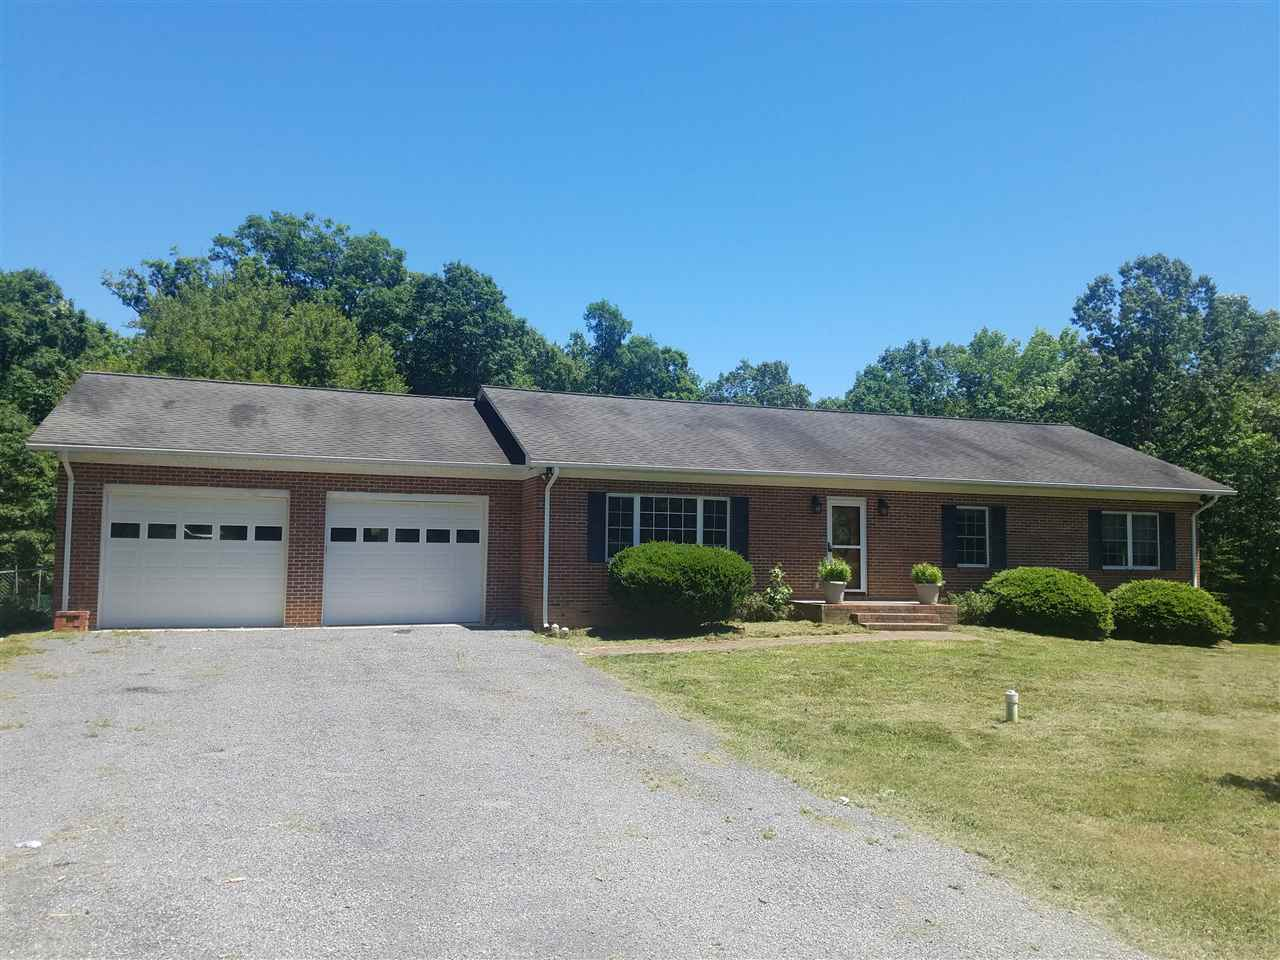 183 Meltons Way, Gordonsville